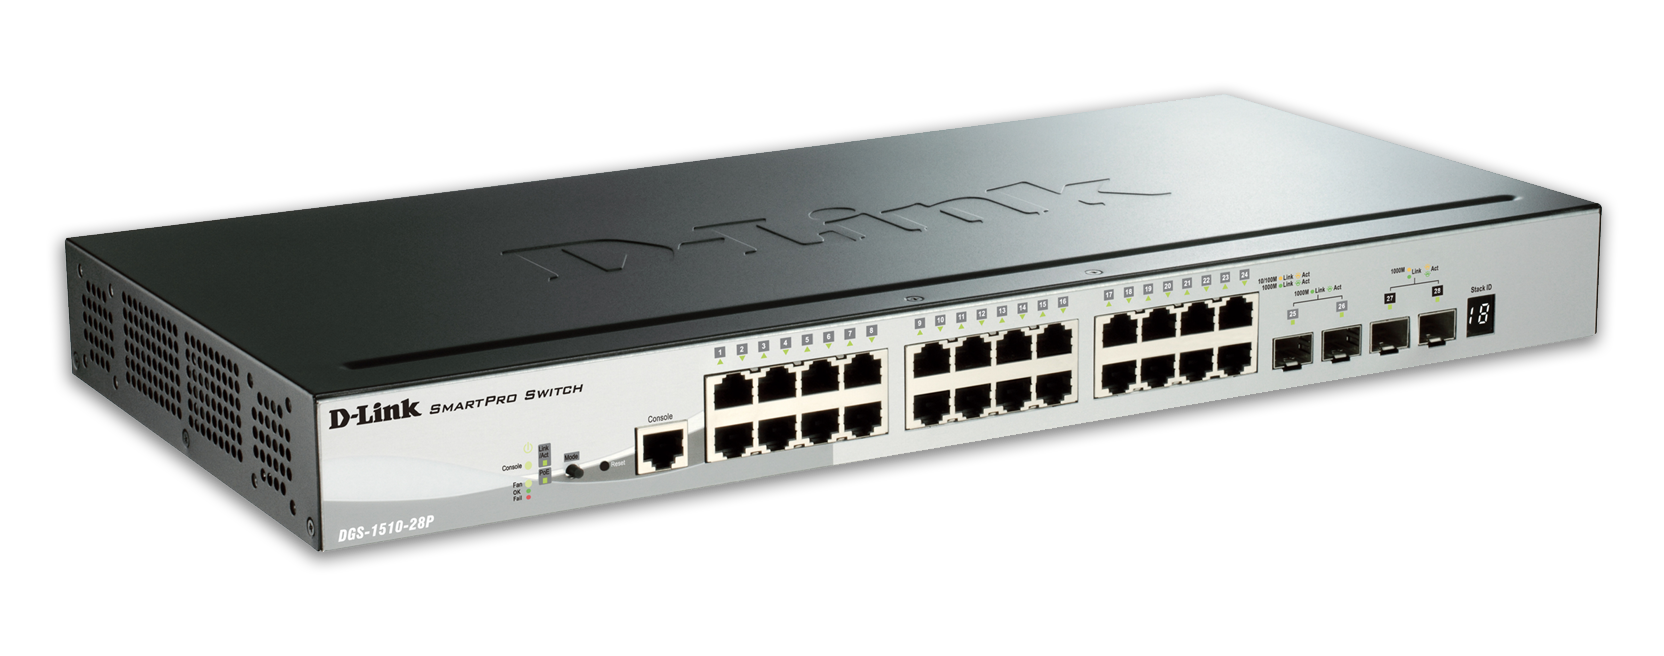 D-Link DGS-1510-28P 28-Port Gigabit Stackable SmartPro PoE Switch including 2 SFP ports and 2 x 10G SFP+ ports- 24 x 1